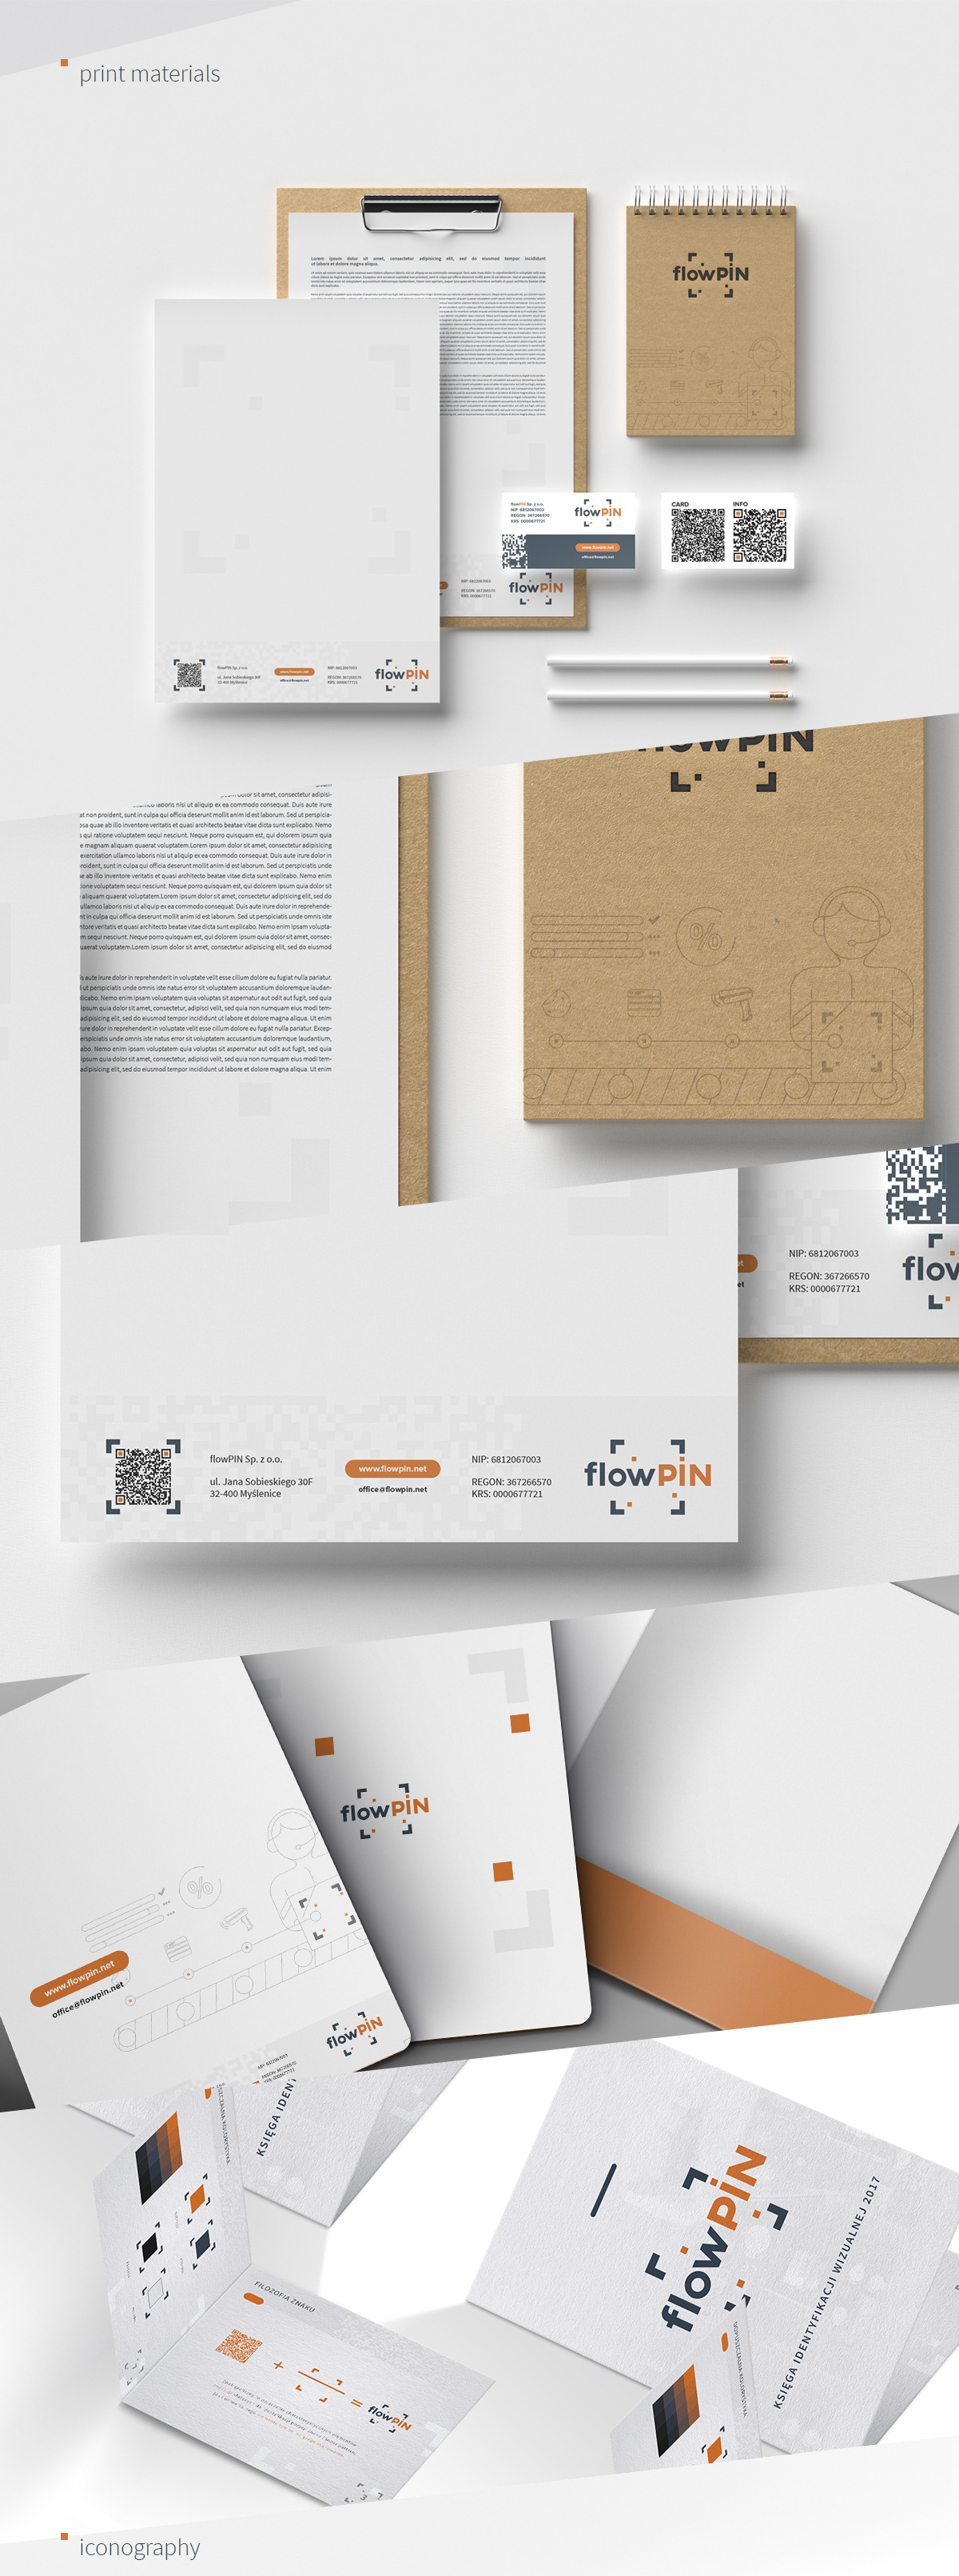 branding  Icon iconography notes business card codes technology folder print materials business paper Corporate Identity